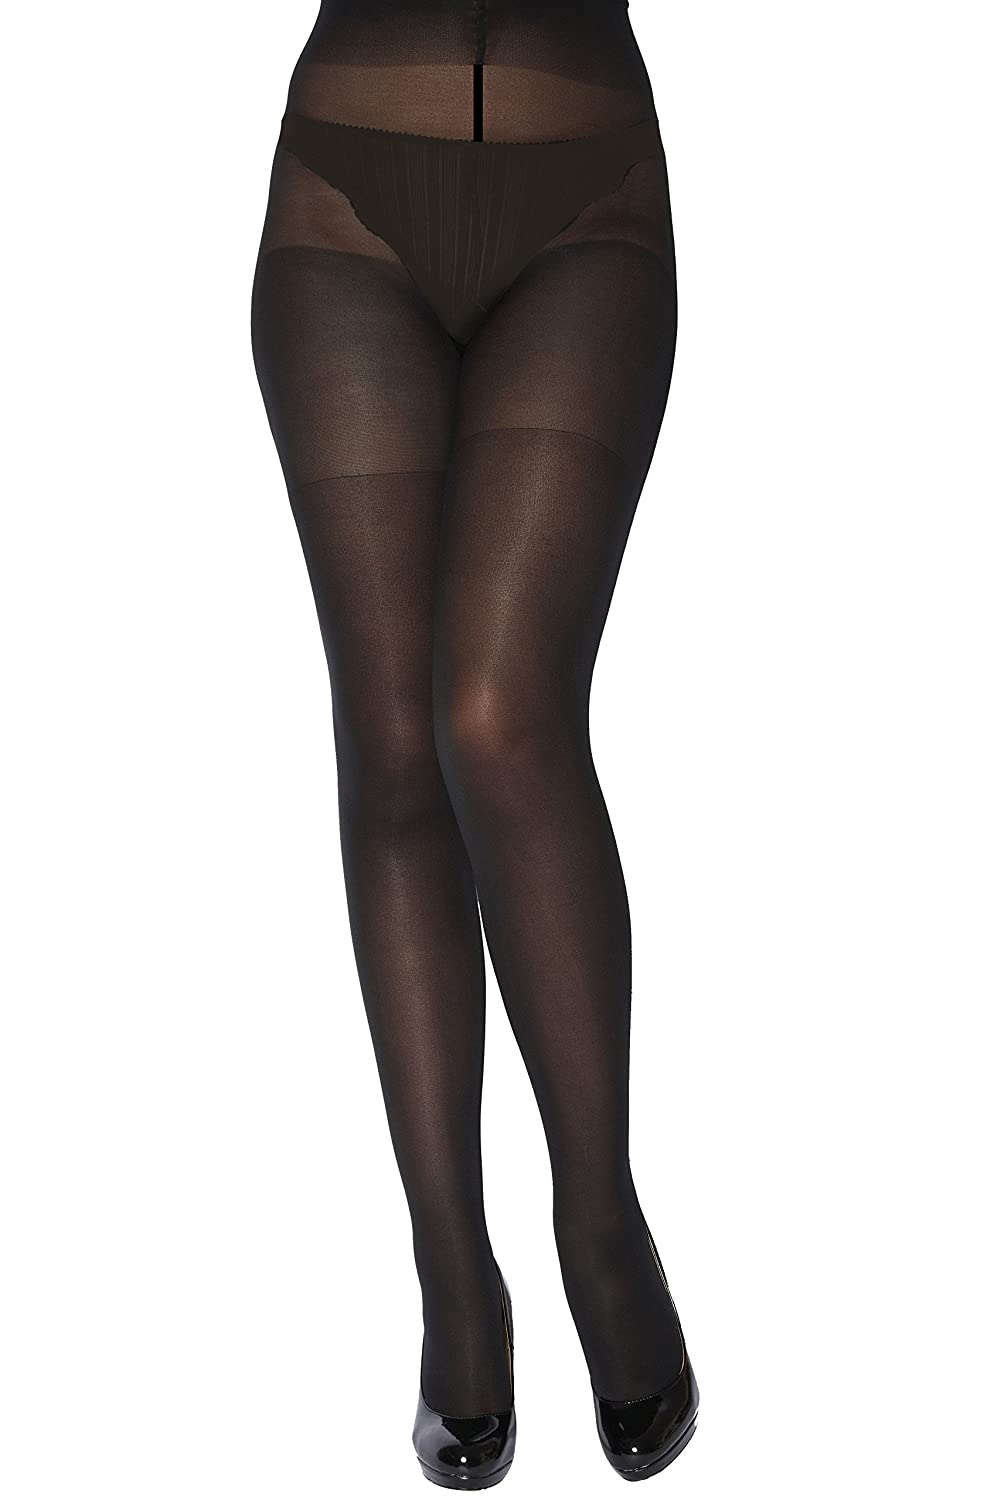 d9035b2733228 Ladies 1 Pair Charnos XeLence 50 Denier Opaque Tights - Black 22-26: Amazon.co.uk:  Clothing